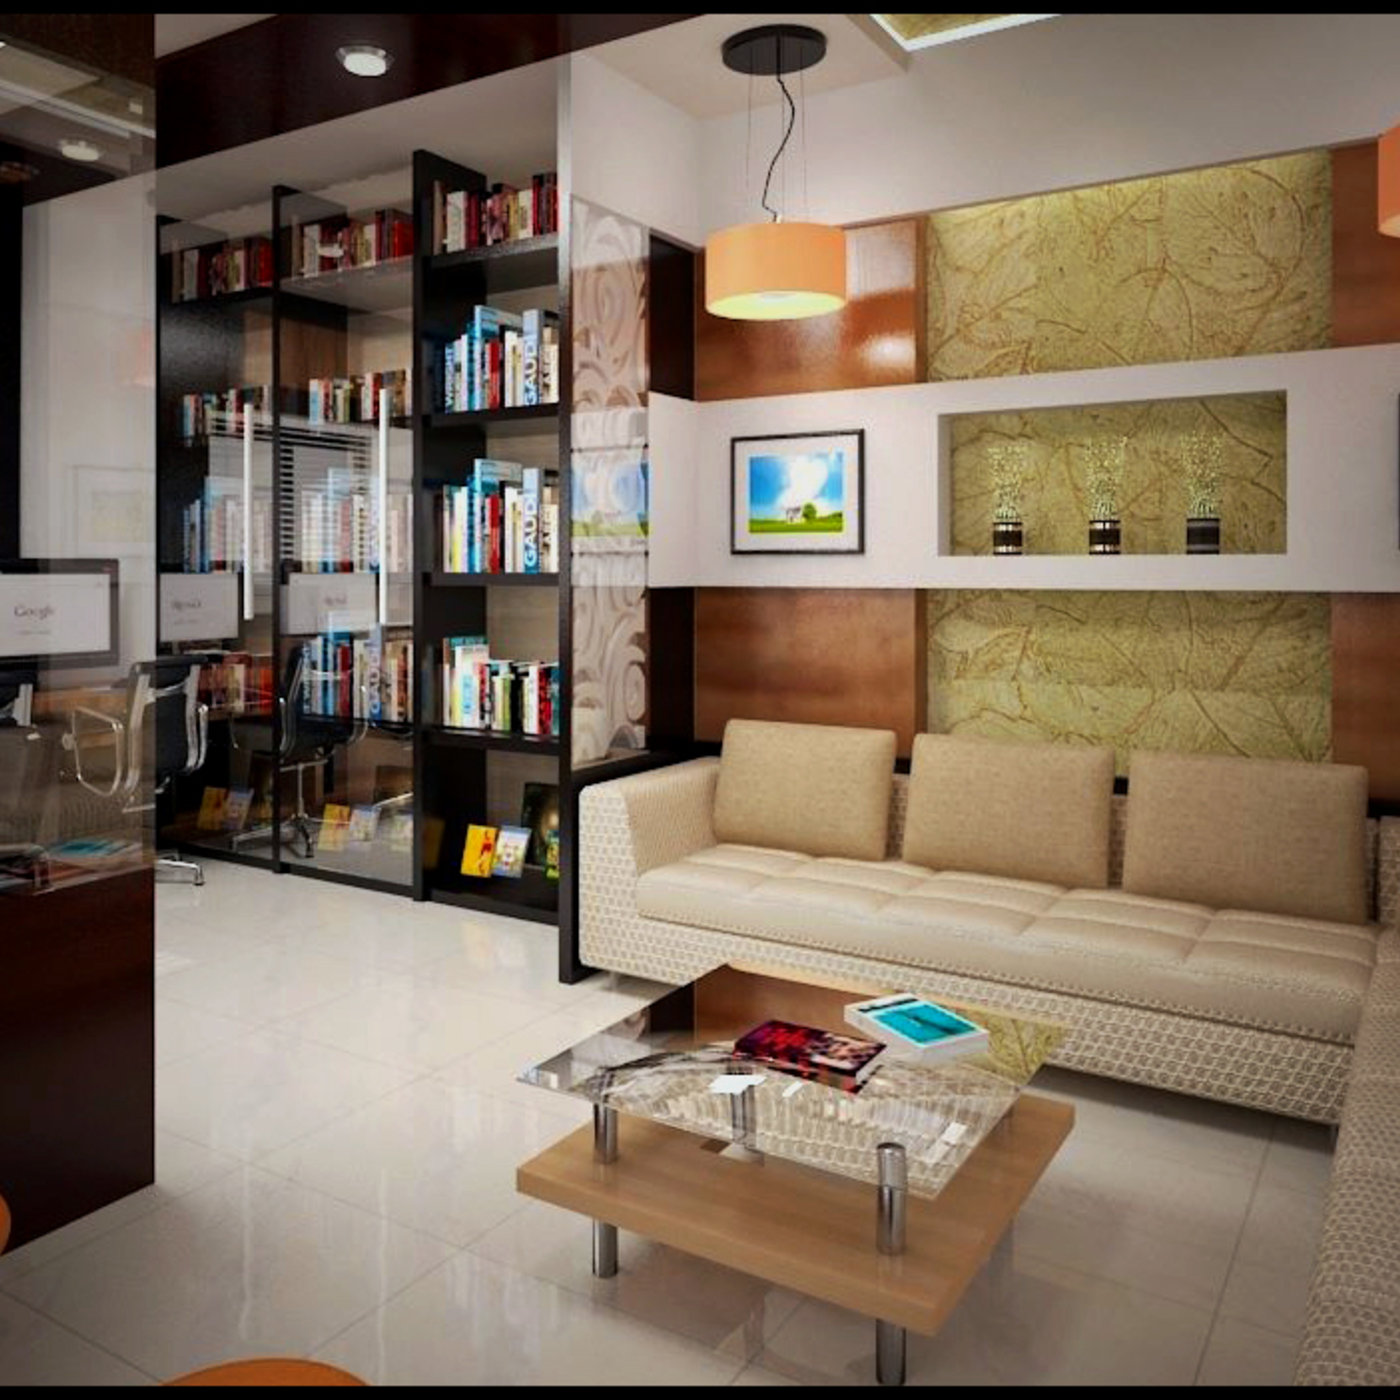 3d Arc Work Office Interior Design Software Used 3ds Max Vray Photoshop Cgtrader